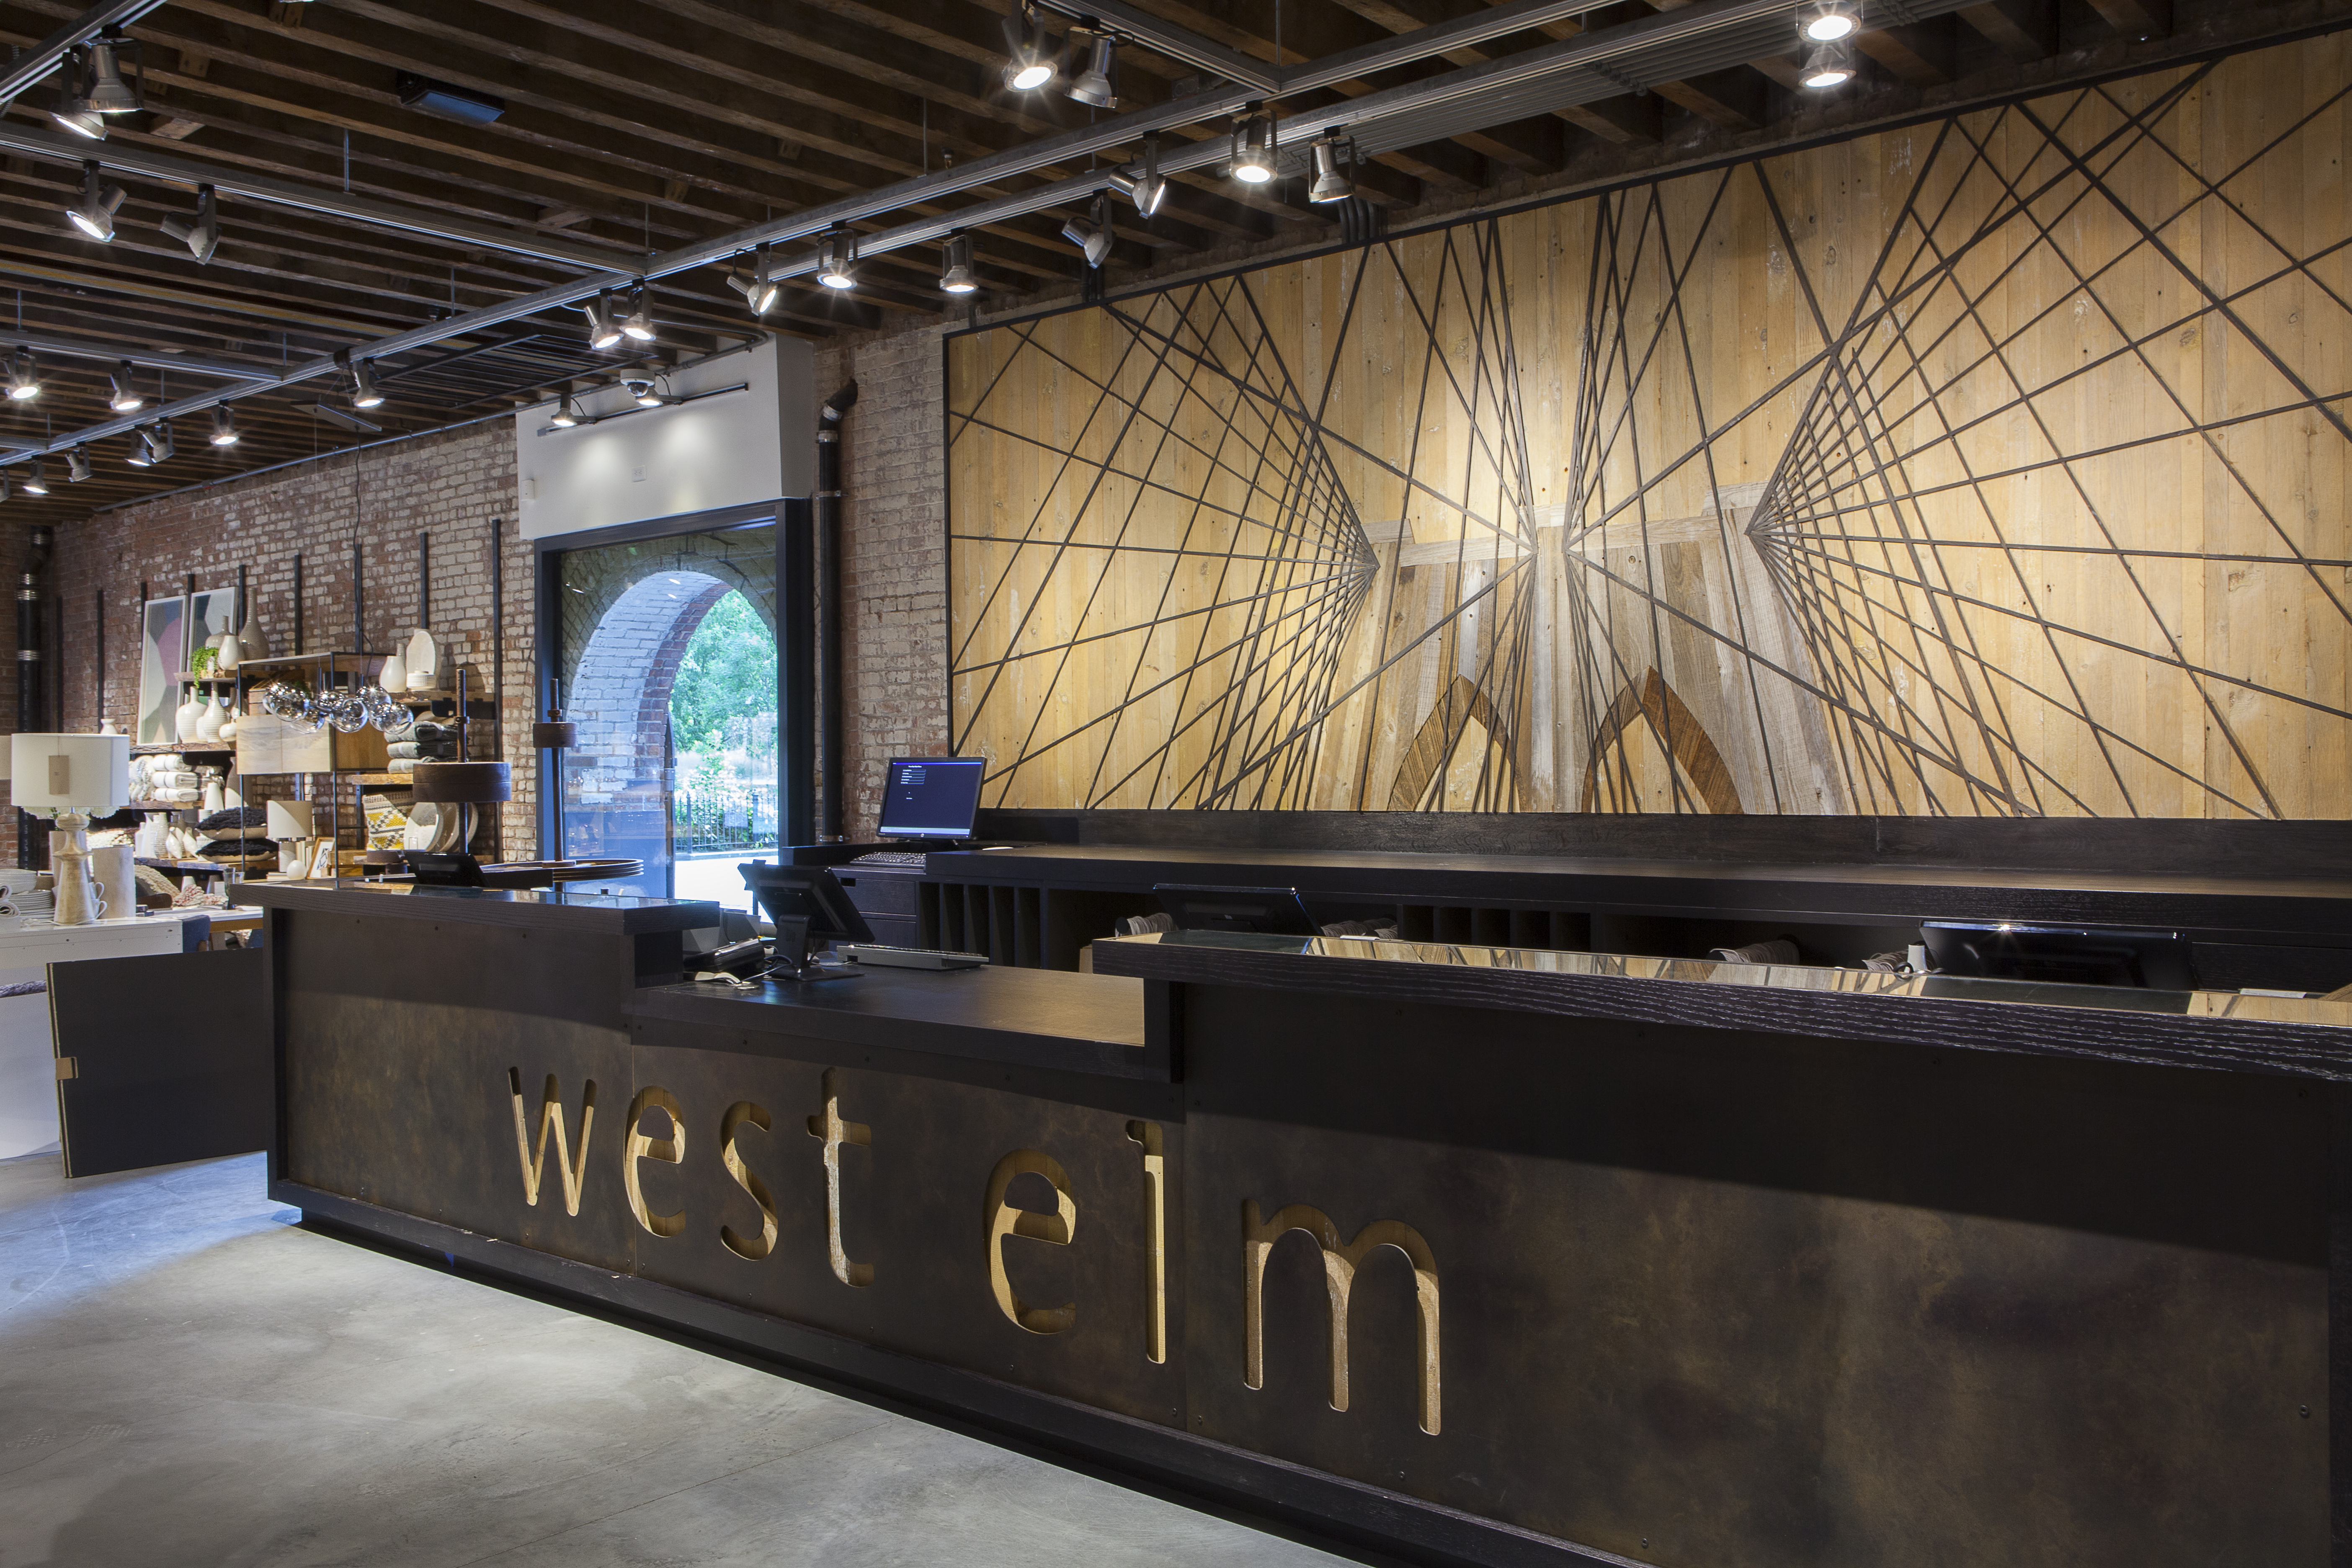 CoStar | West Elm to Open Long-Awaited Minneapolis Location